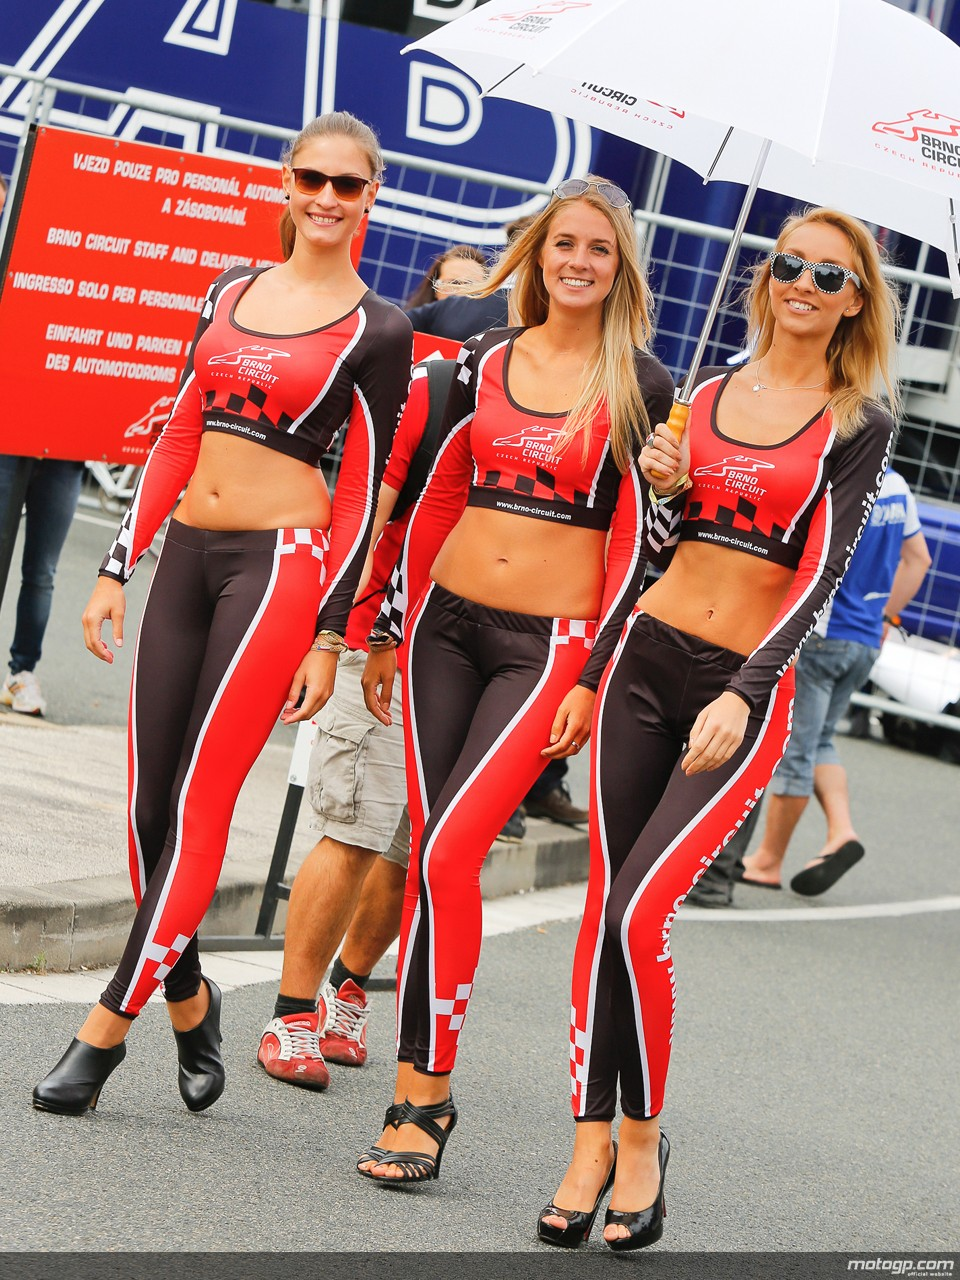 Paddock Girls At Brno